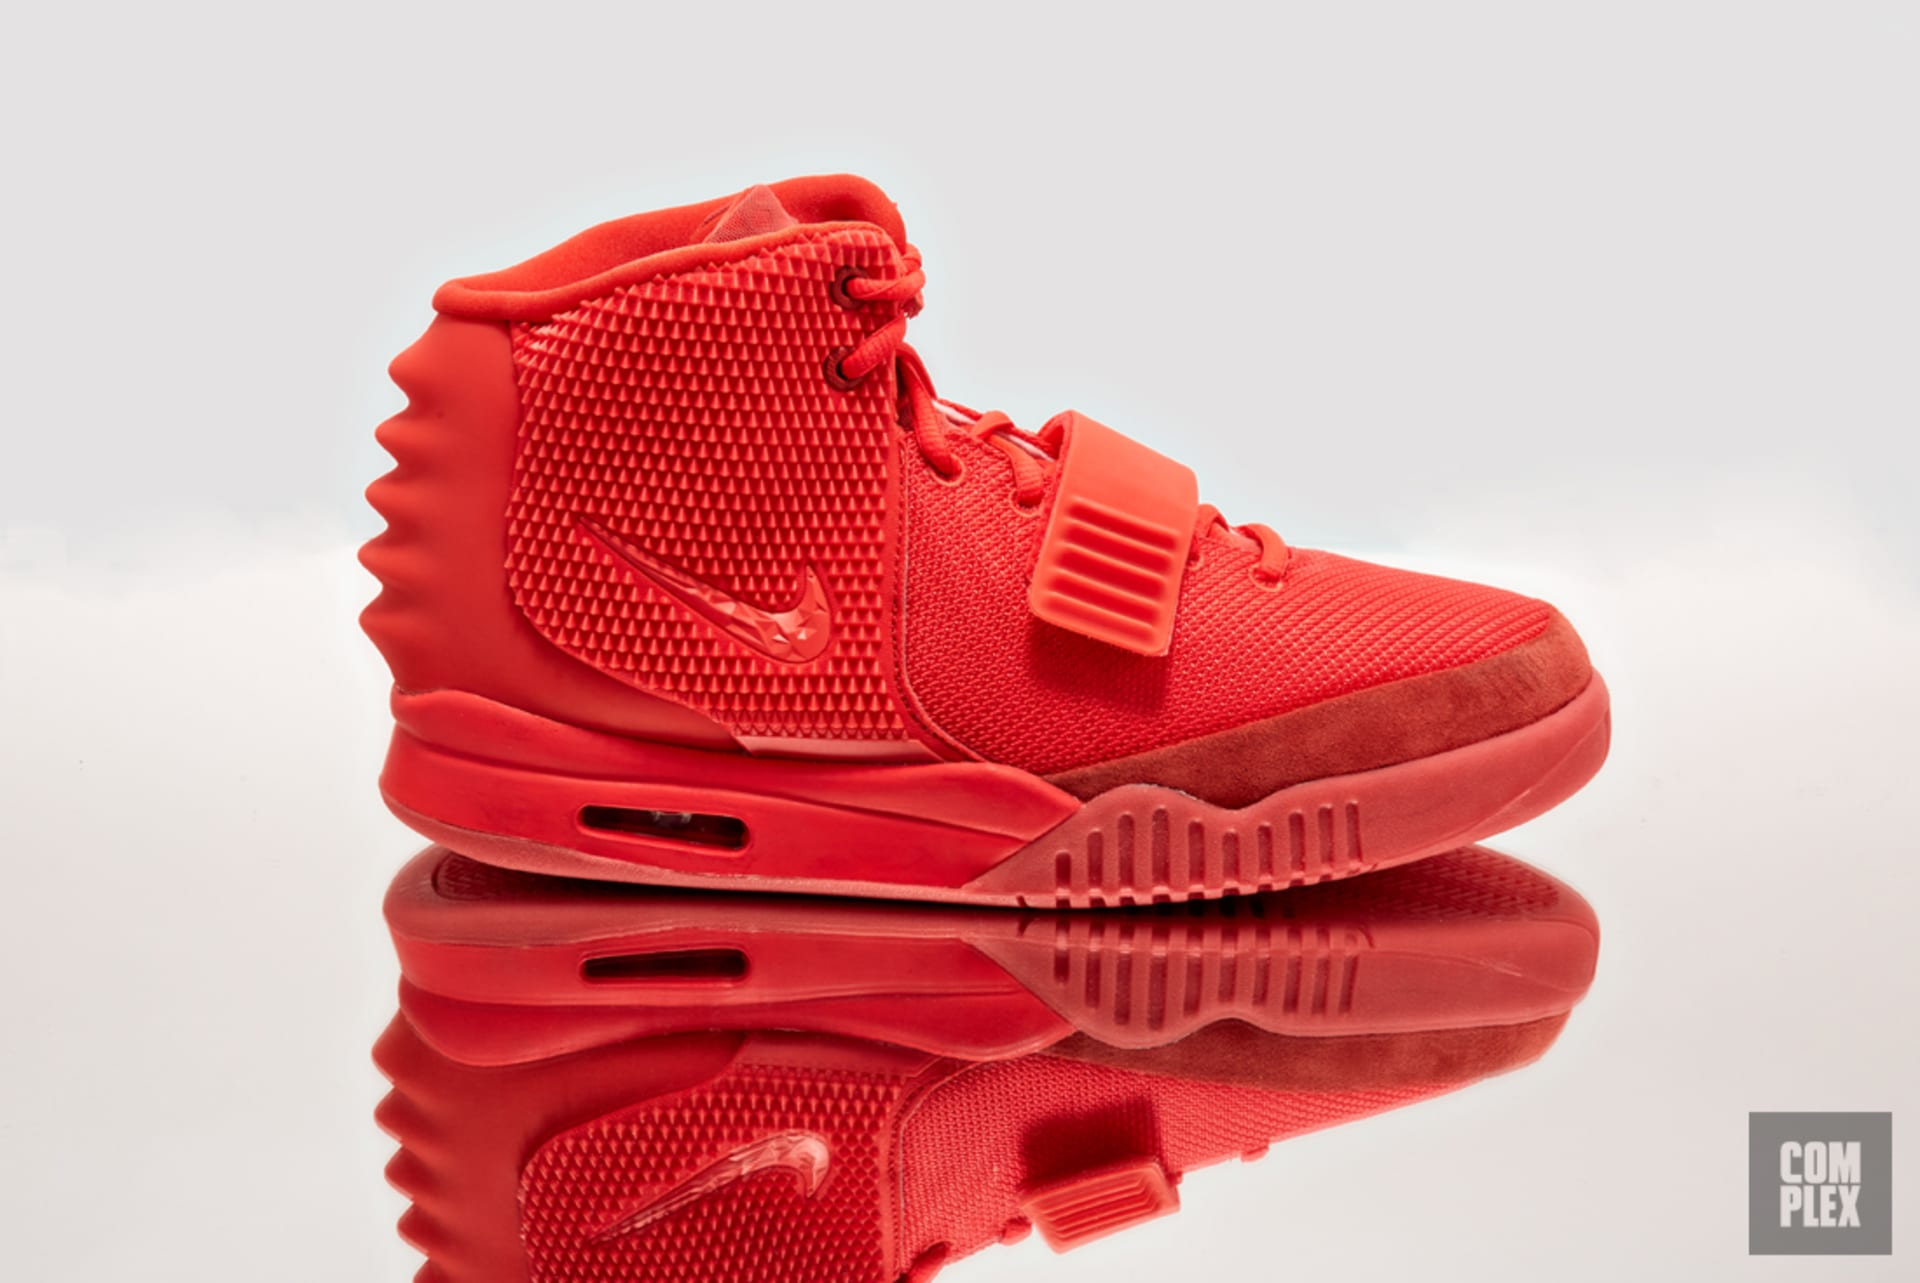 And Air Led The Kanye How Greatest — Yeezy 2 Success To West's vmwN8n0